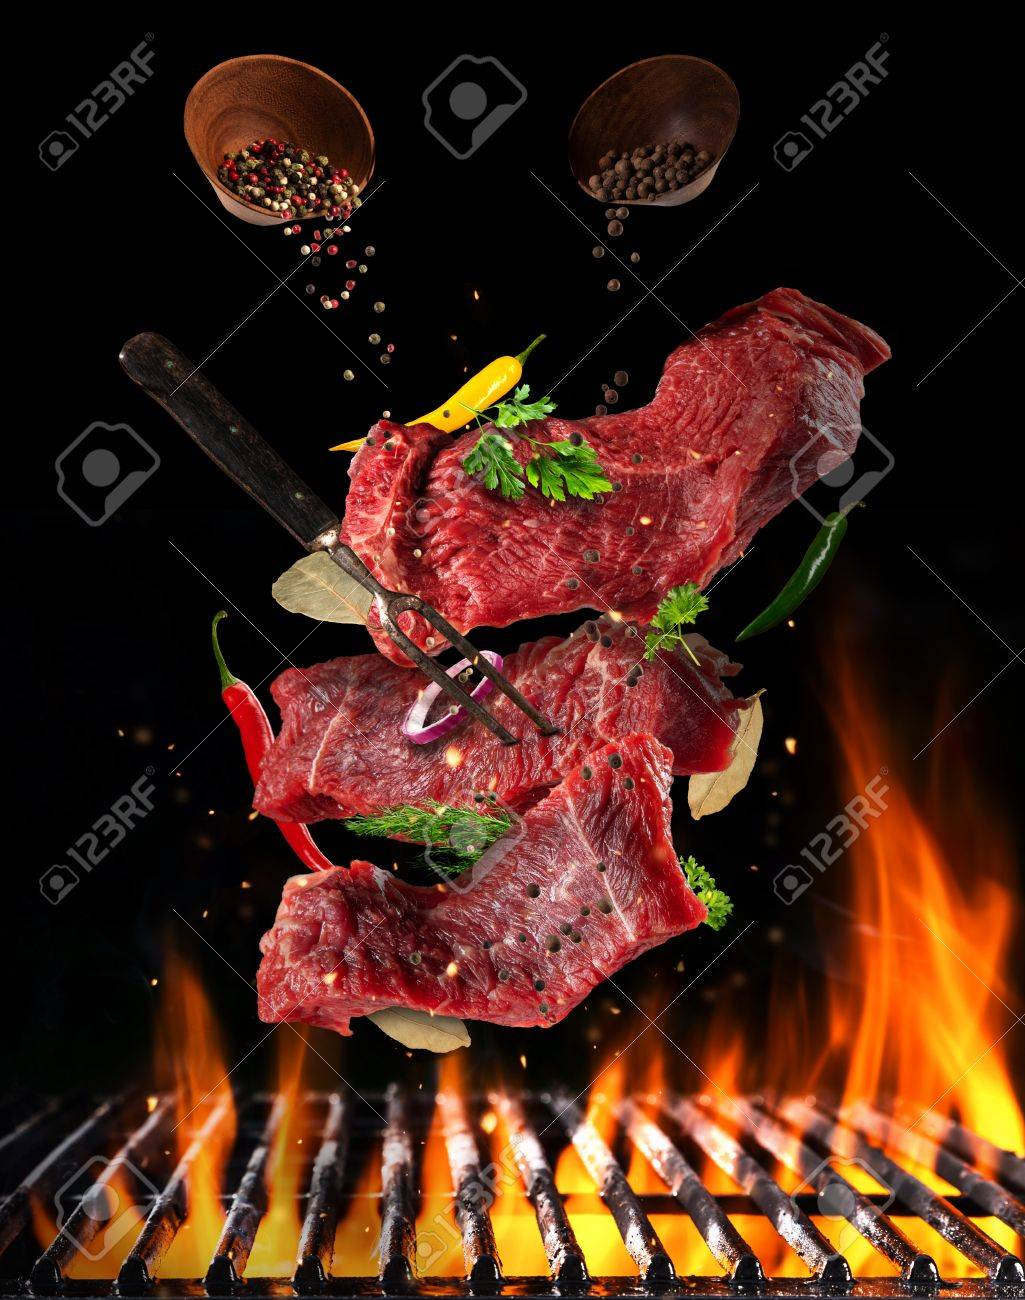 Flying pieces of raw steaks, with ingredients for cooking, barbecue grill with fire flames. Concept of food preparation in low gravity mode. Separated on smooth background - 76366202